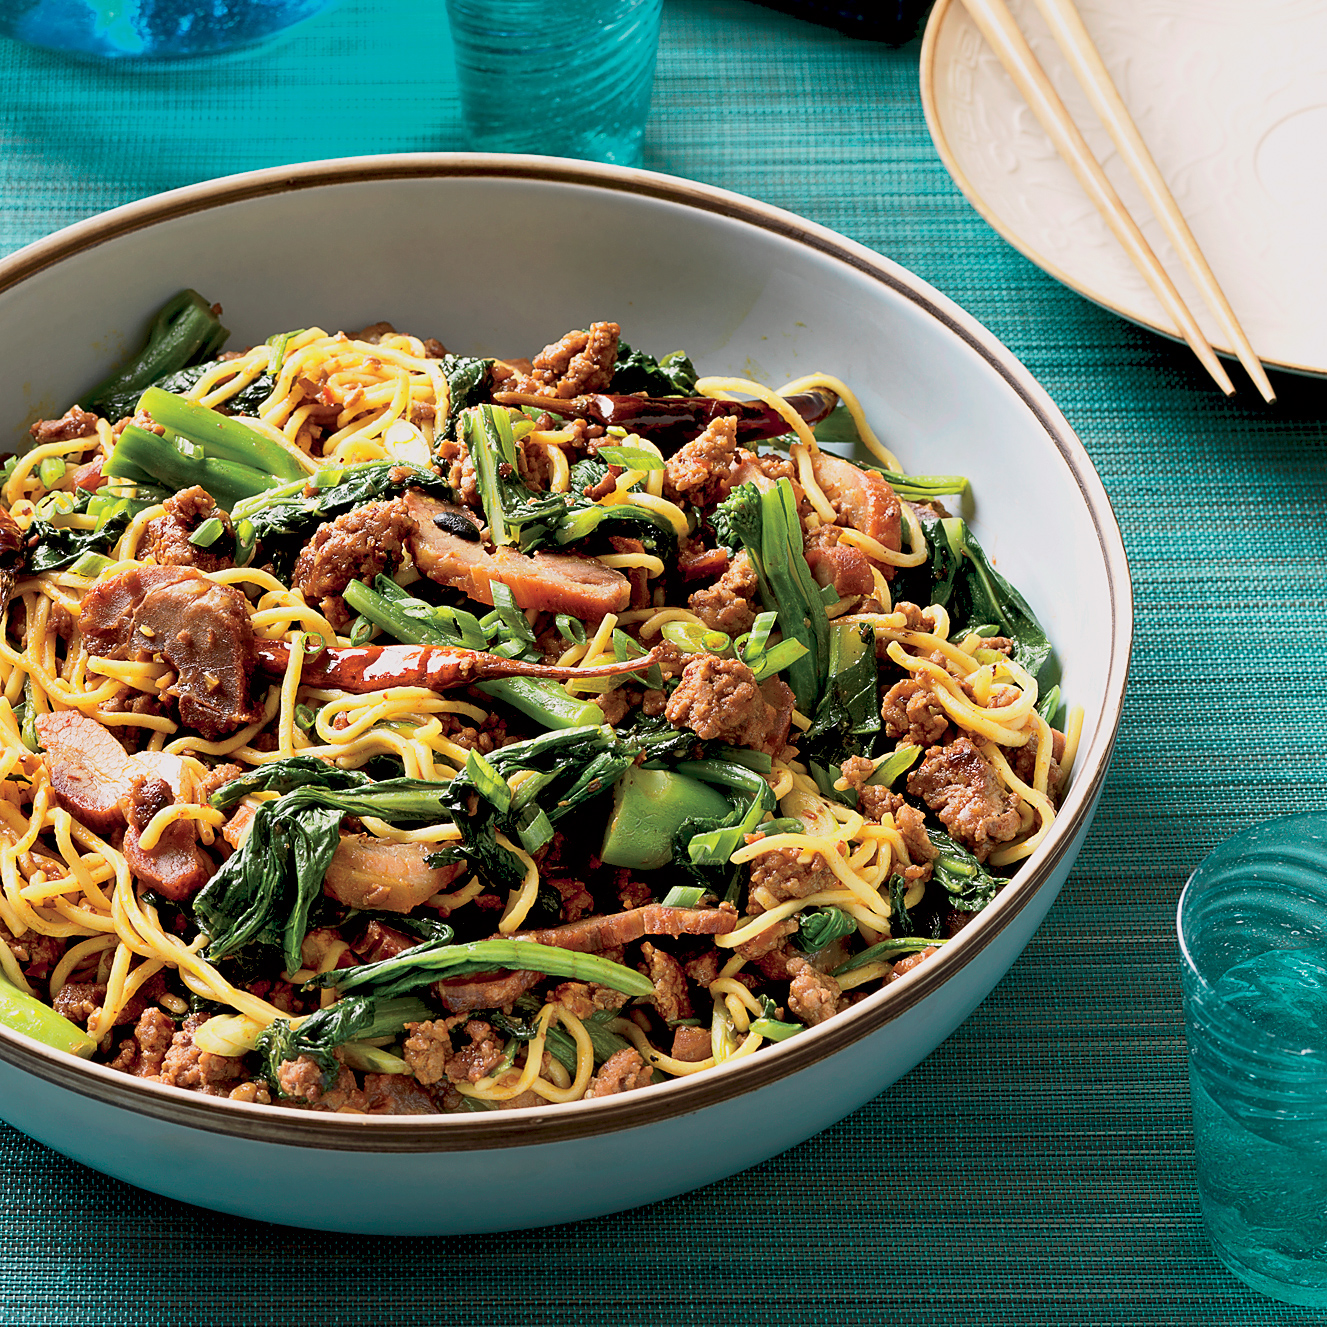 With Asian ground pork recipes suggest